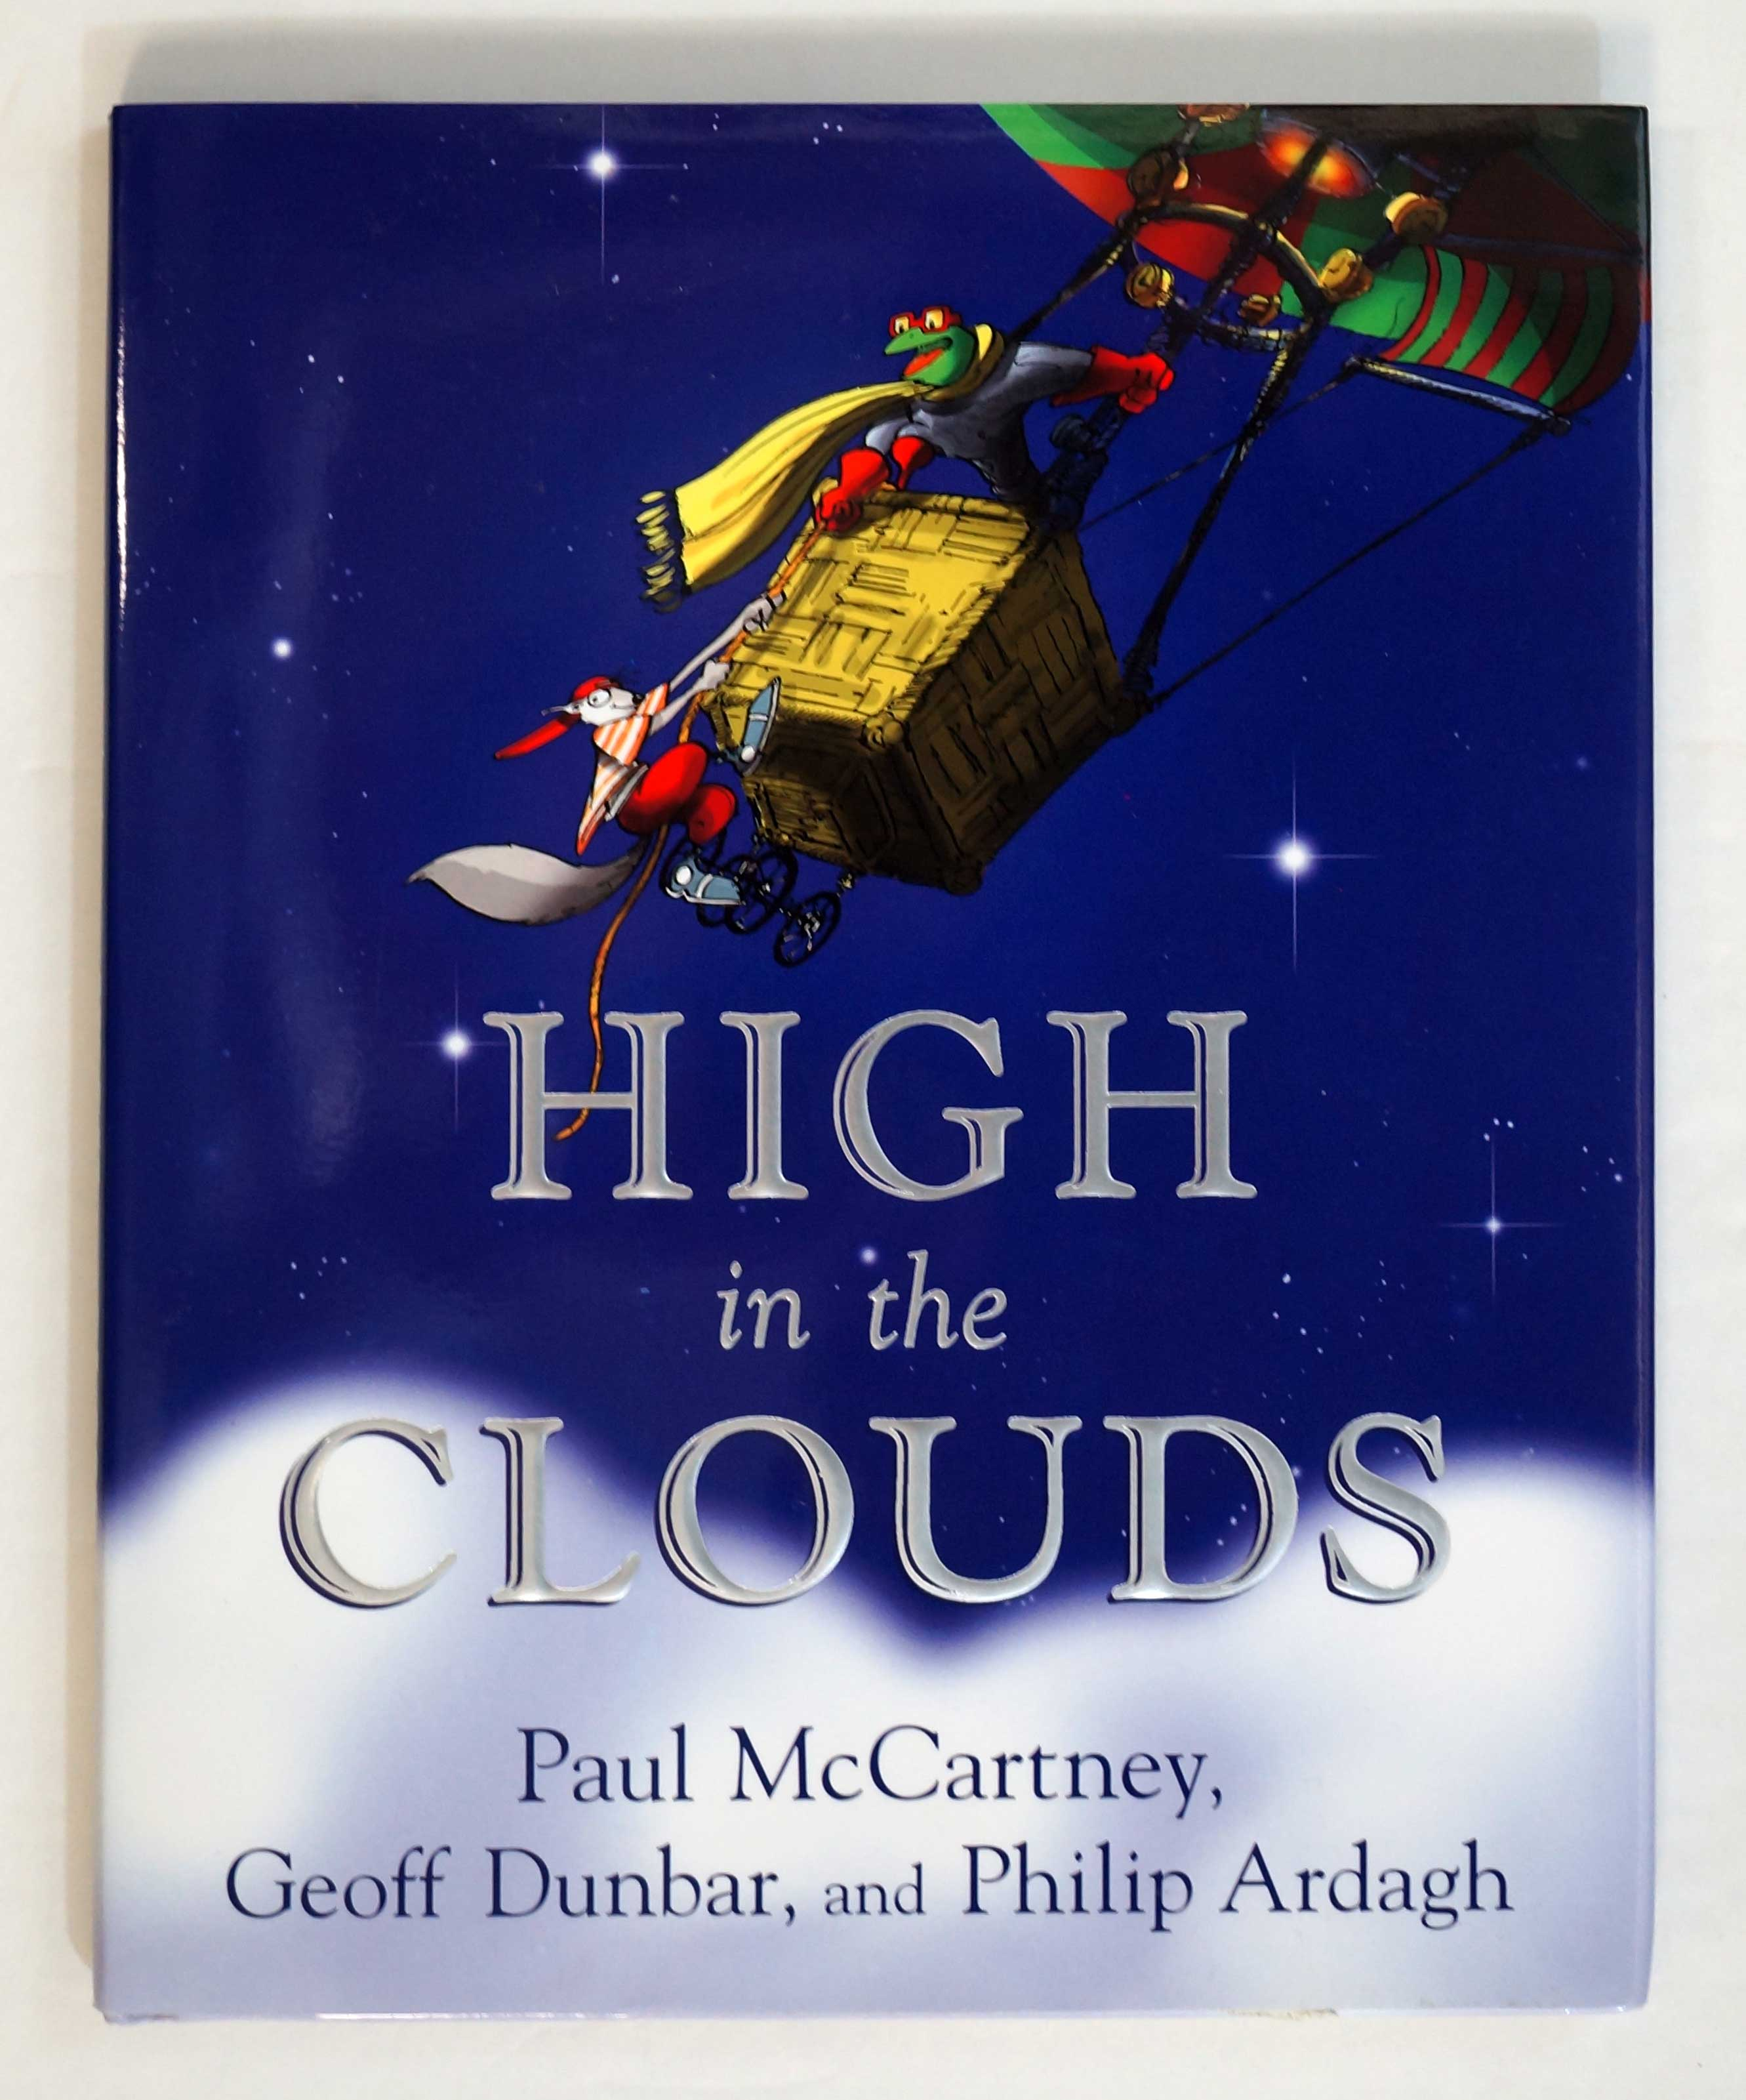 Lot 266 High in the Clouds Autographed by Paul McCartney